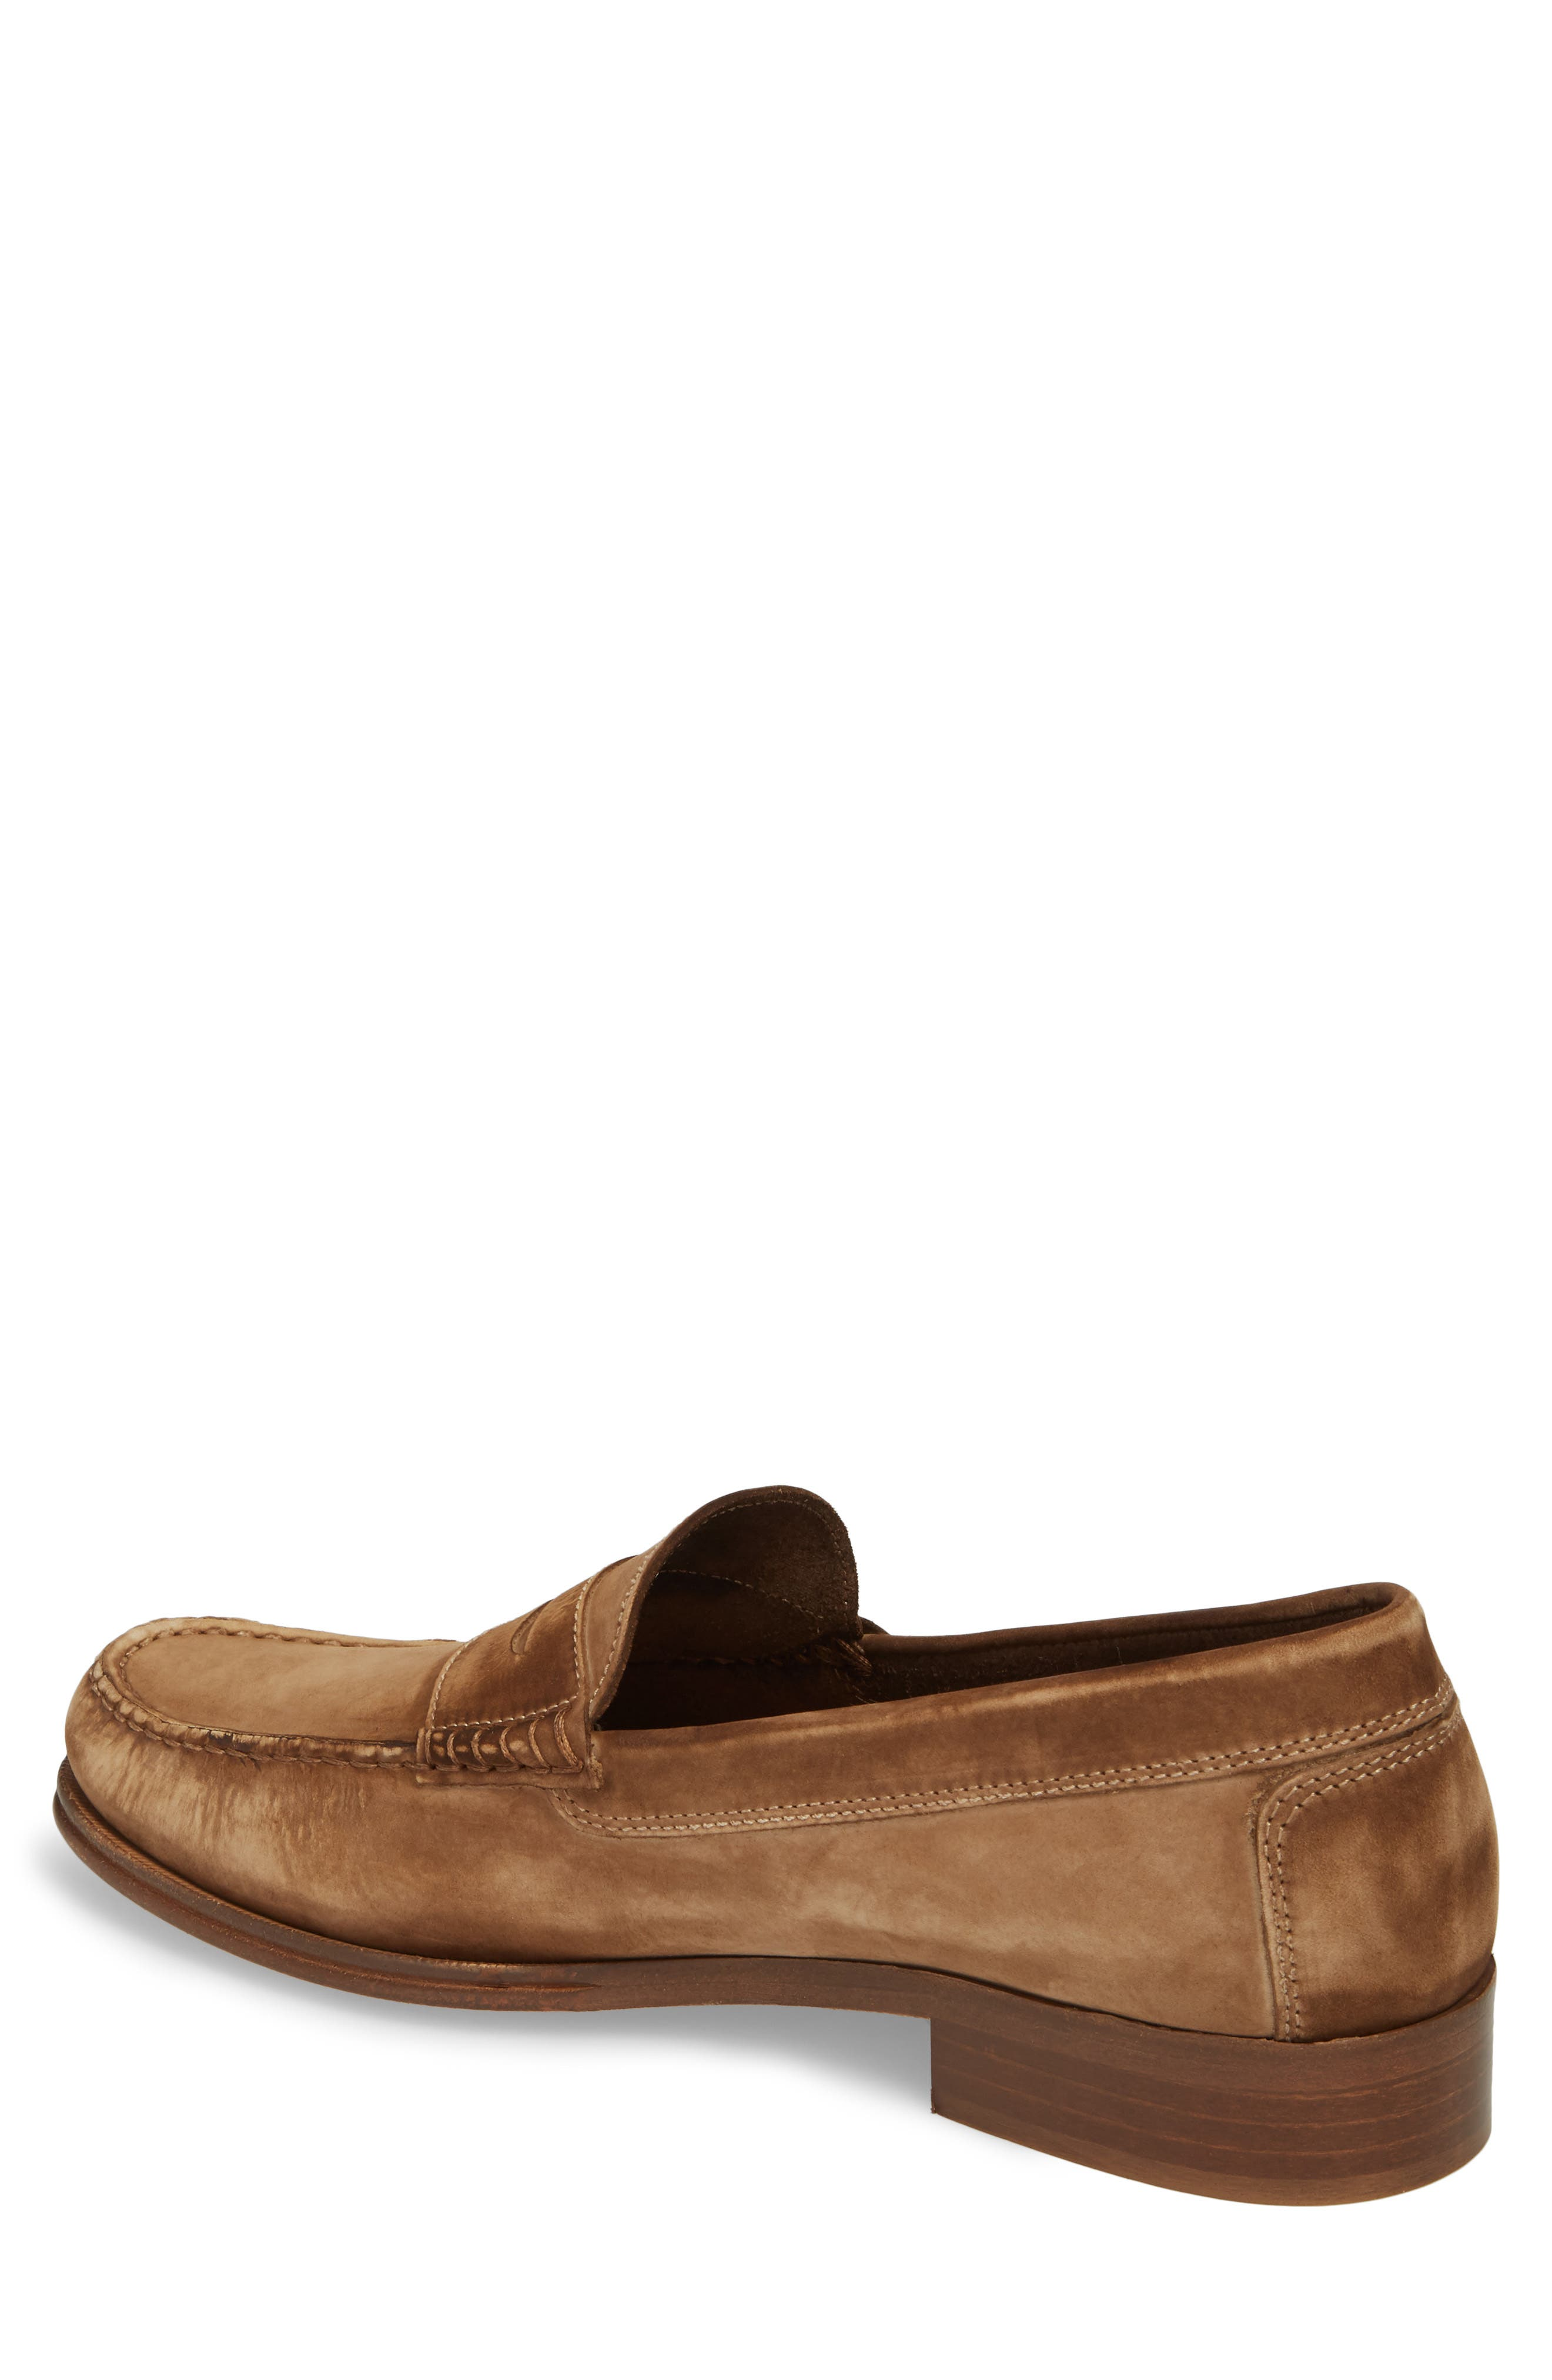 Nicola Penny Loafer,                             Alternate thumbnail 11, color,